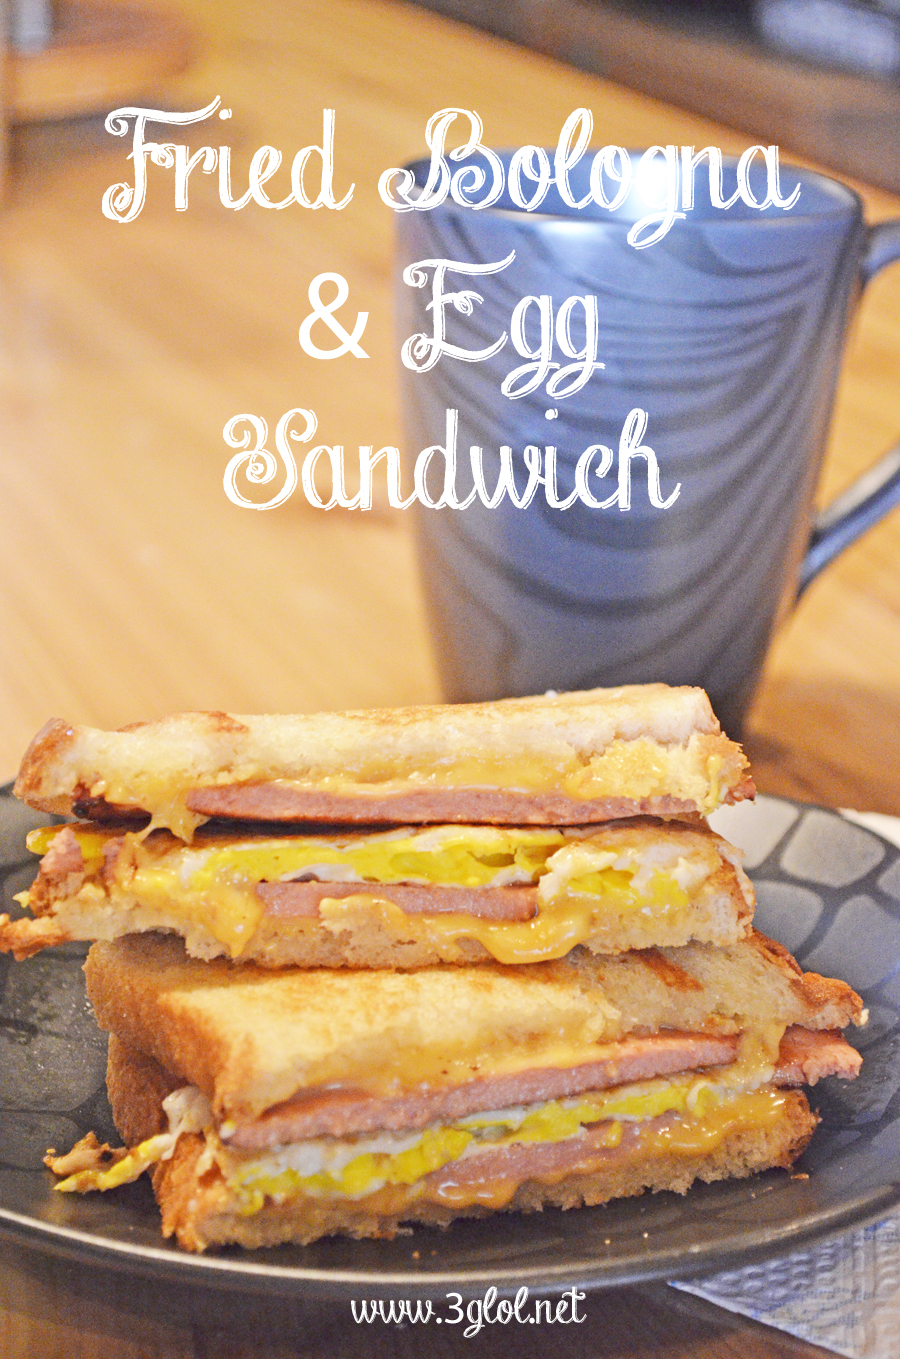 Fried Bologna and Egg Sandwich by 3glol.net